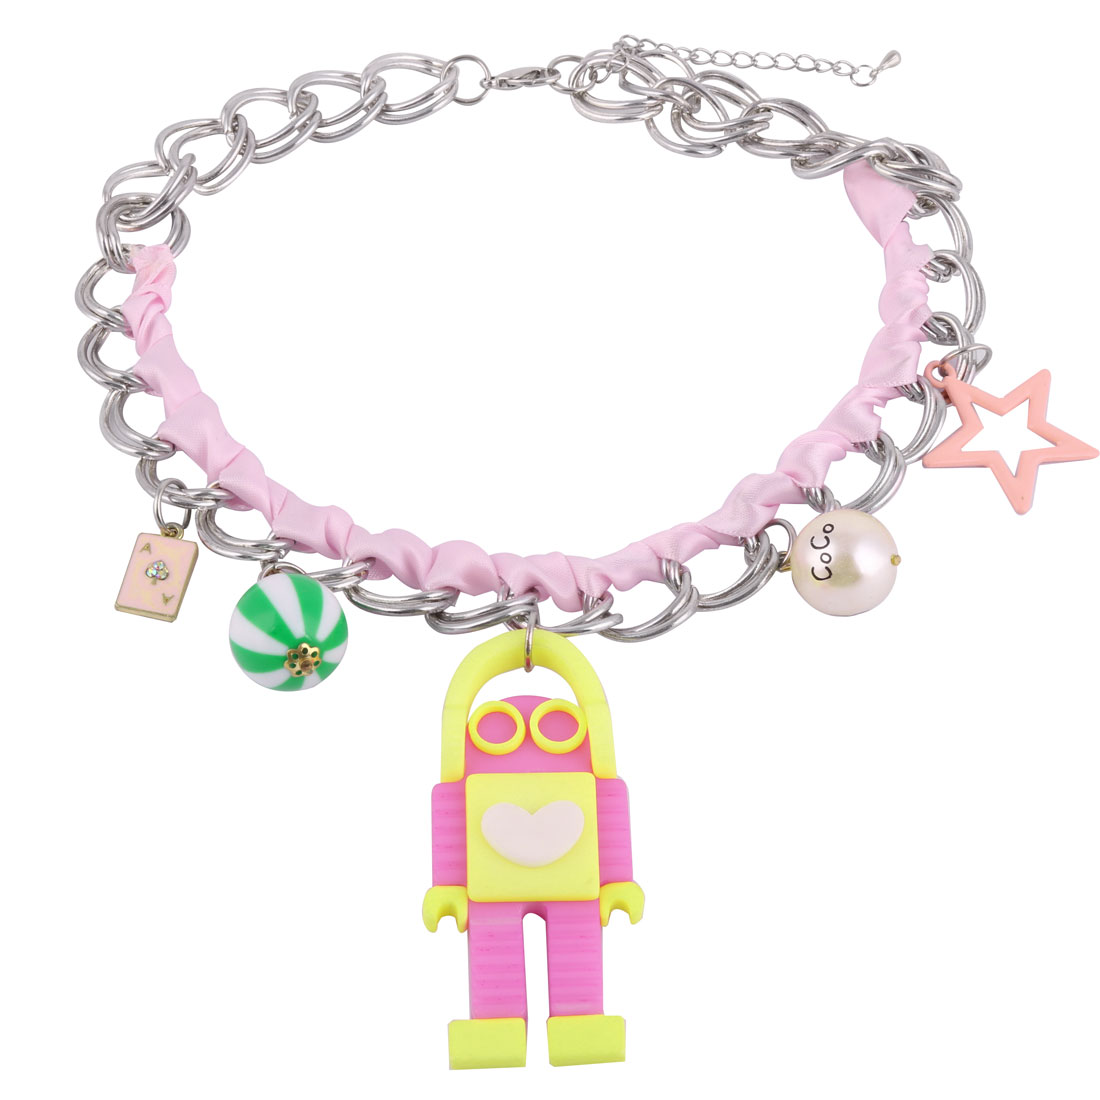 Headphone Wearing Robot Pendant Charm Statement Neck Chain Necklace